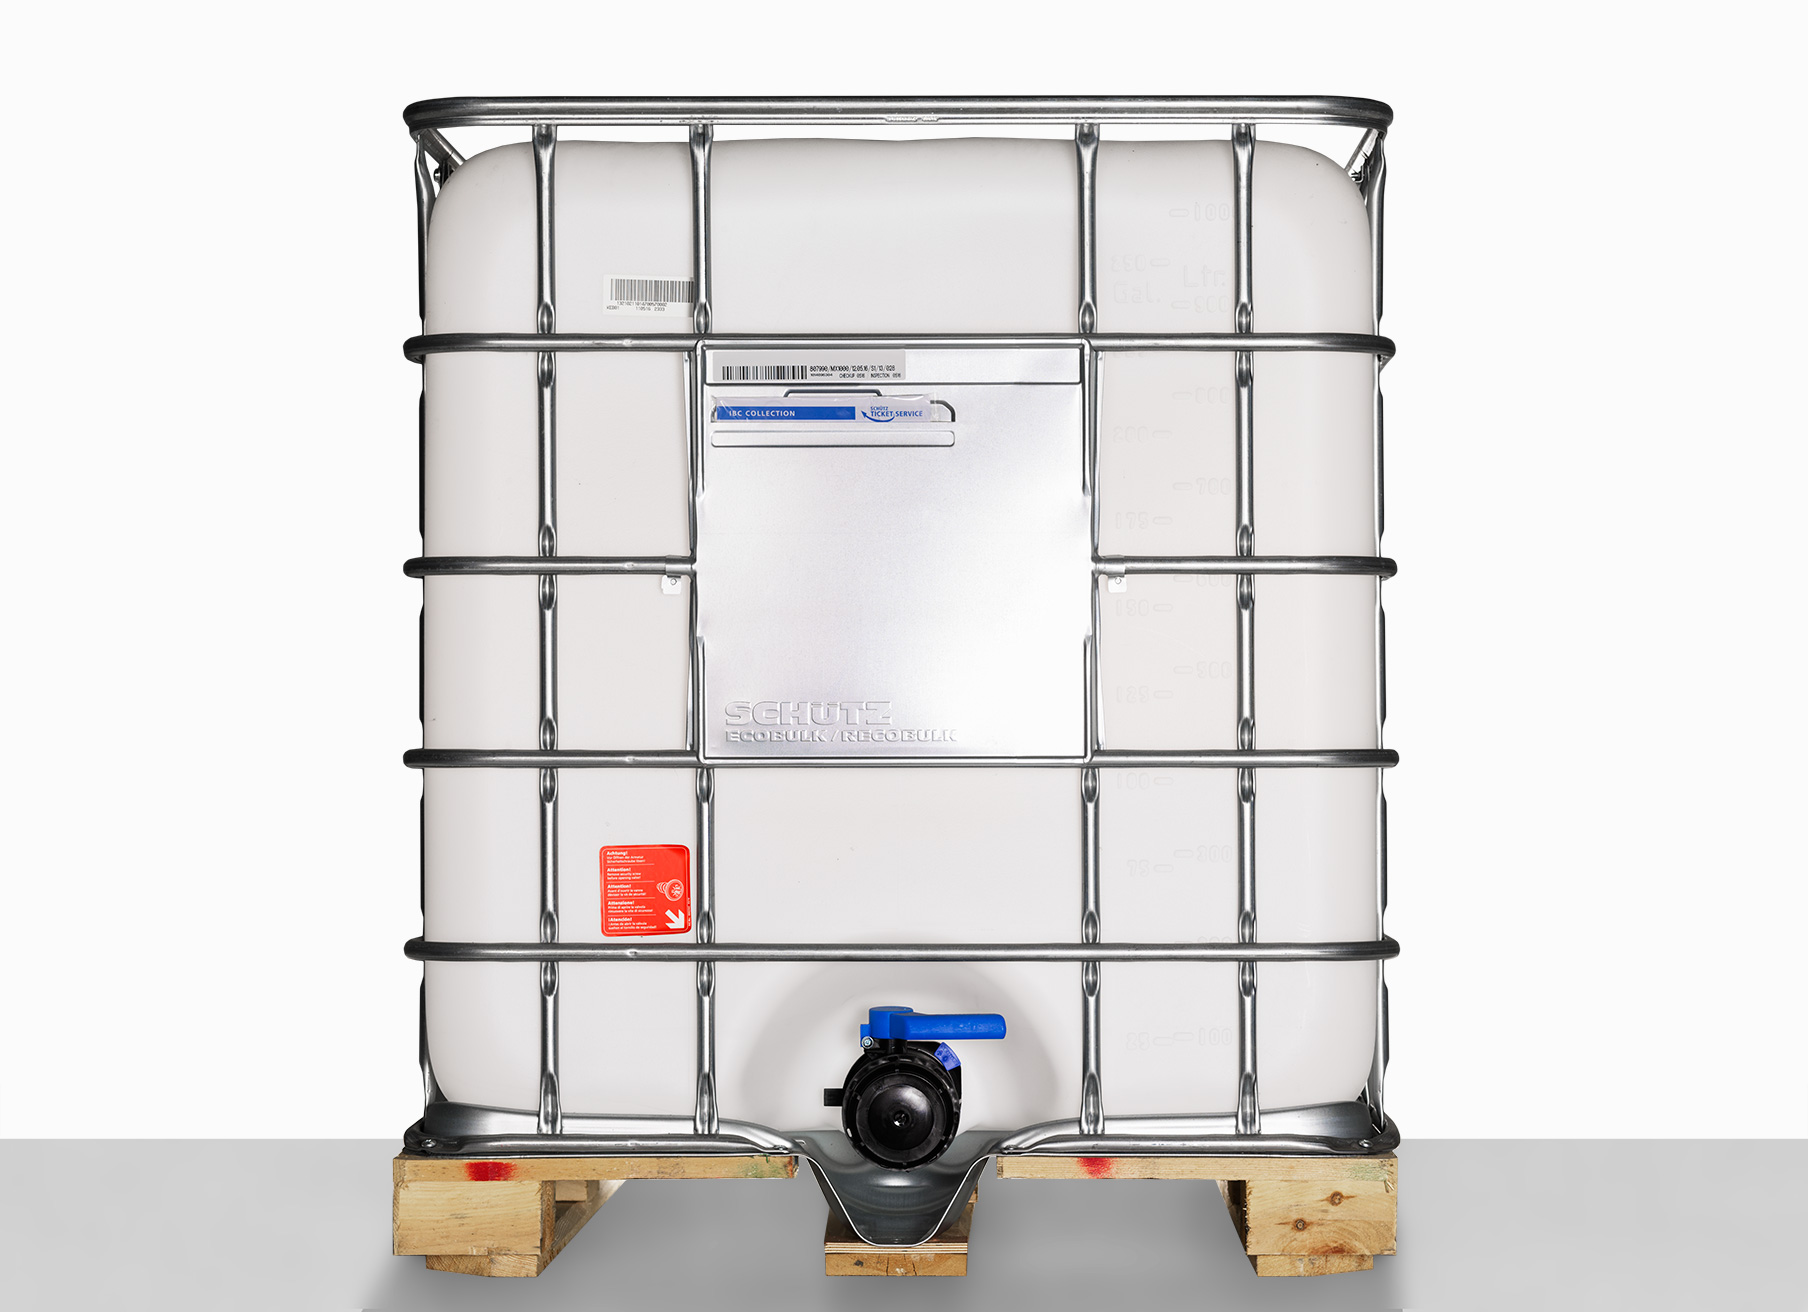 IBC Container MX-Holzpalette: 1.000,0 Liter, Farbe: natur